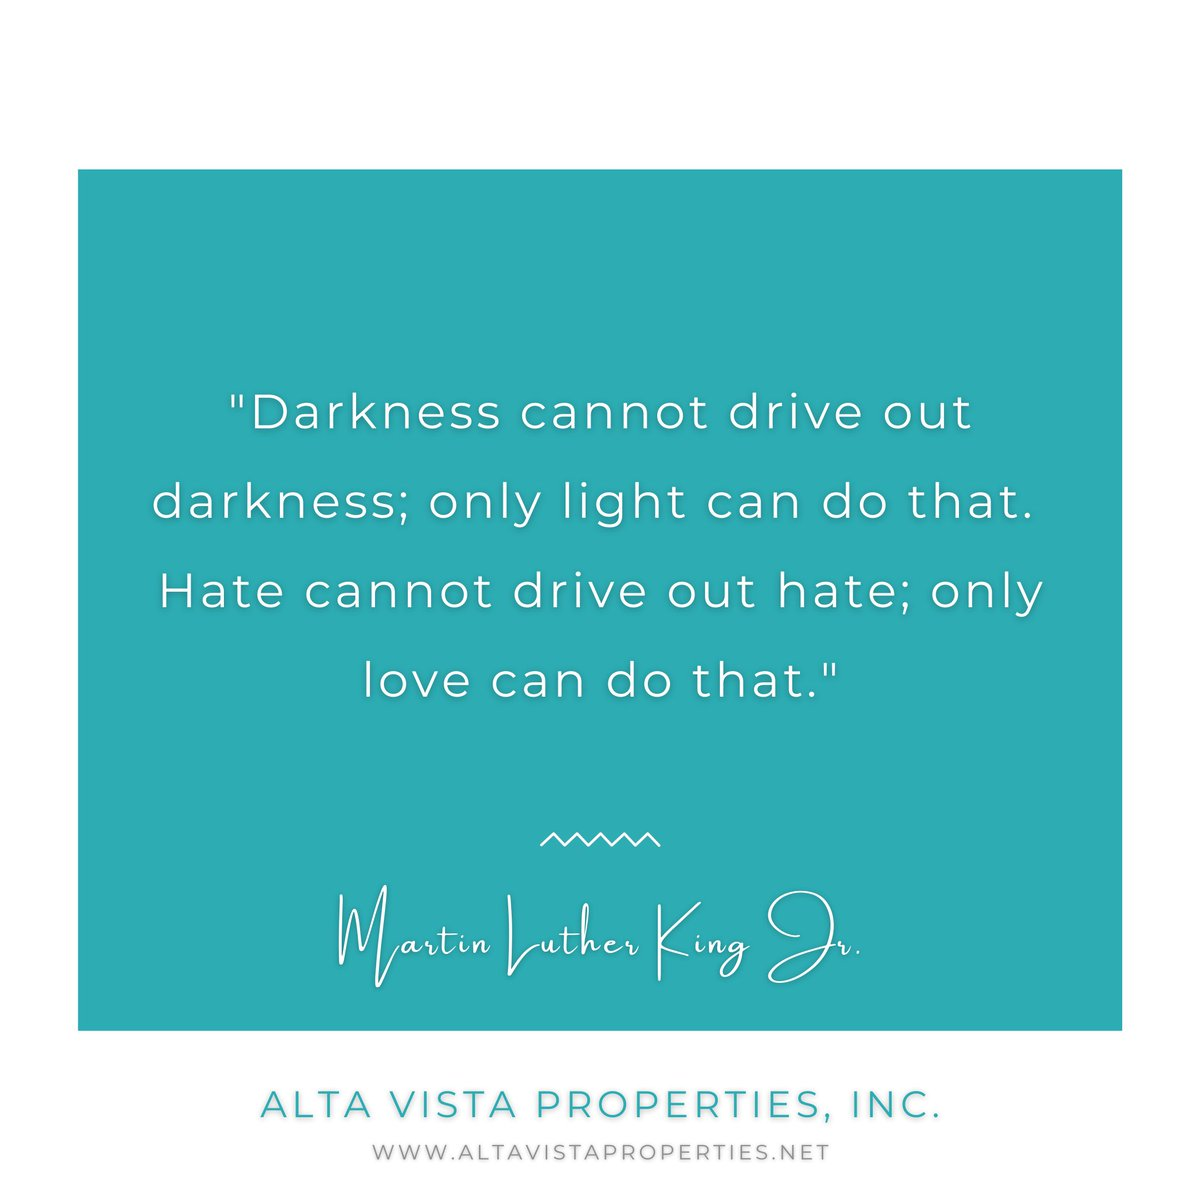 """Darkness cannot drive out darkness; only light can do that. Hate cannot drive out hate; only love can do that."" - Martin Luther King Jr. ☀️❤️ Choose Love. #Love #Light #Unity #Happiness #Peace #MLK #MartinLutherKingJrDay"